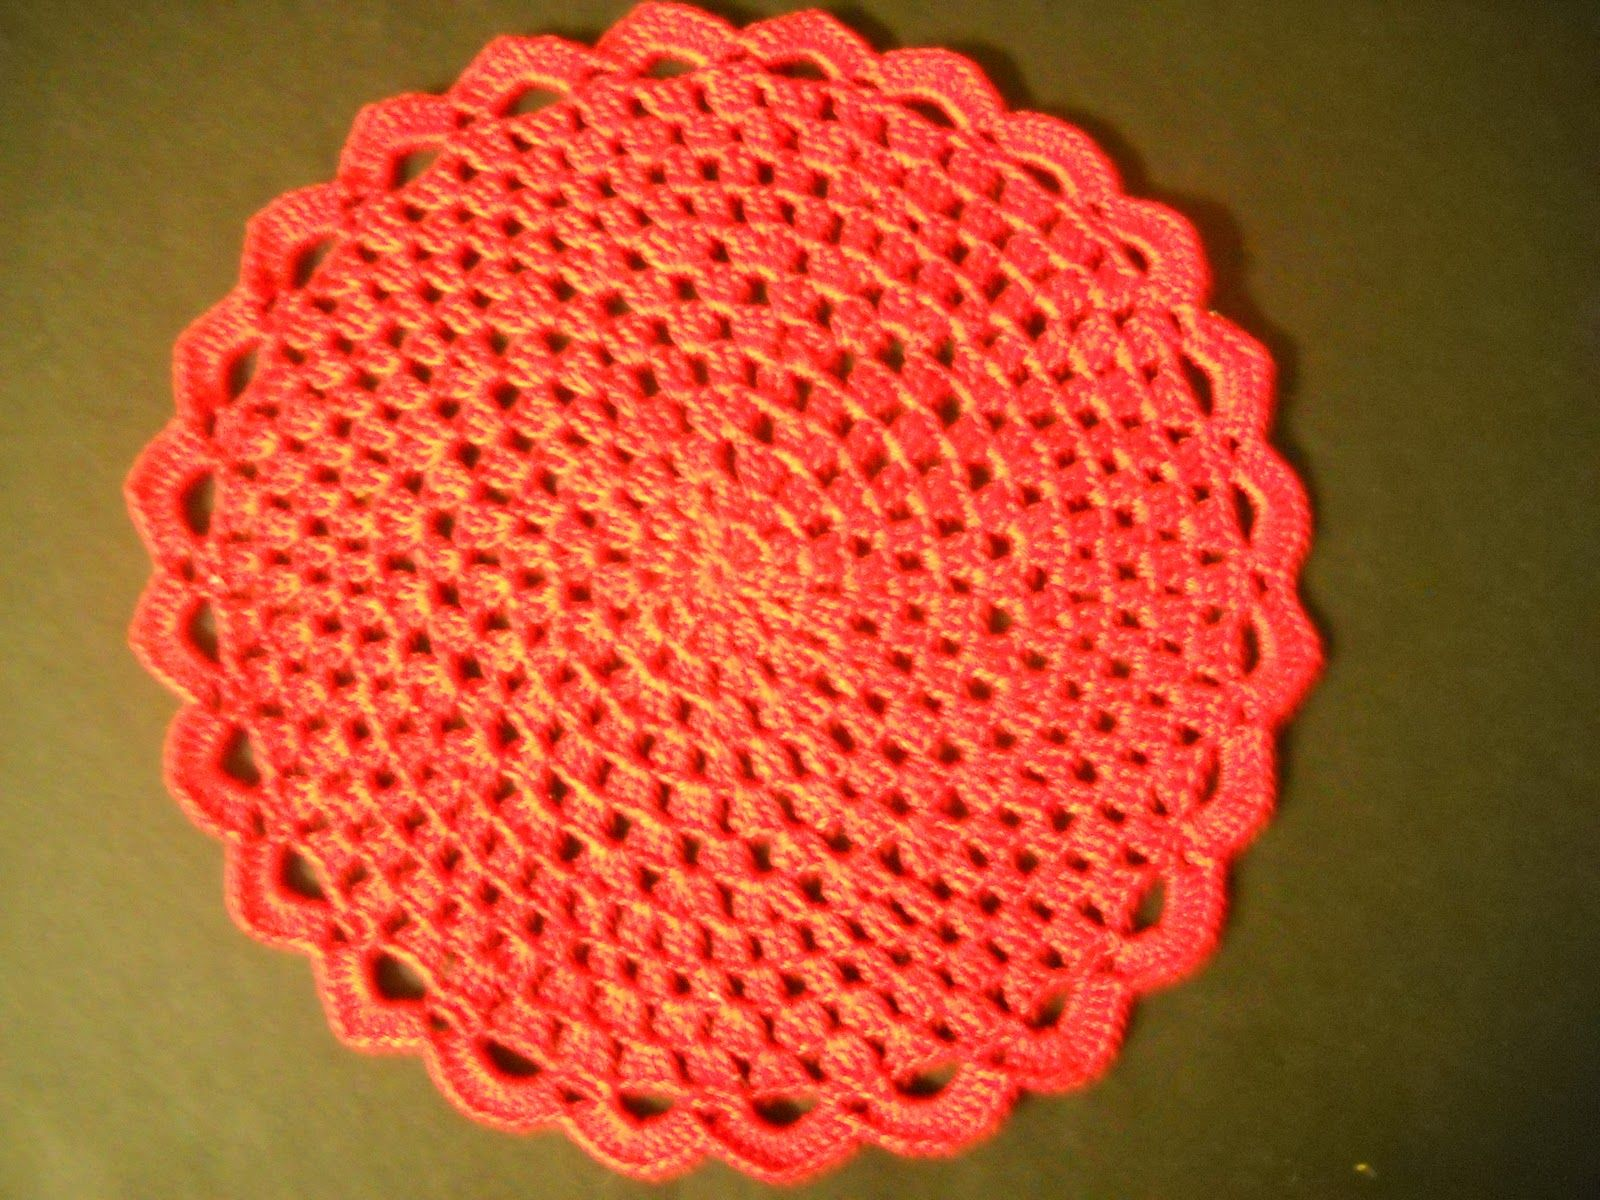 Very Easy Crochet Doily Patterns This Is A Doily I Made From A